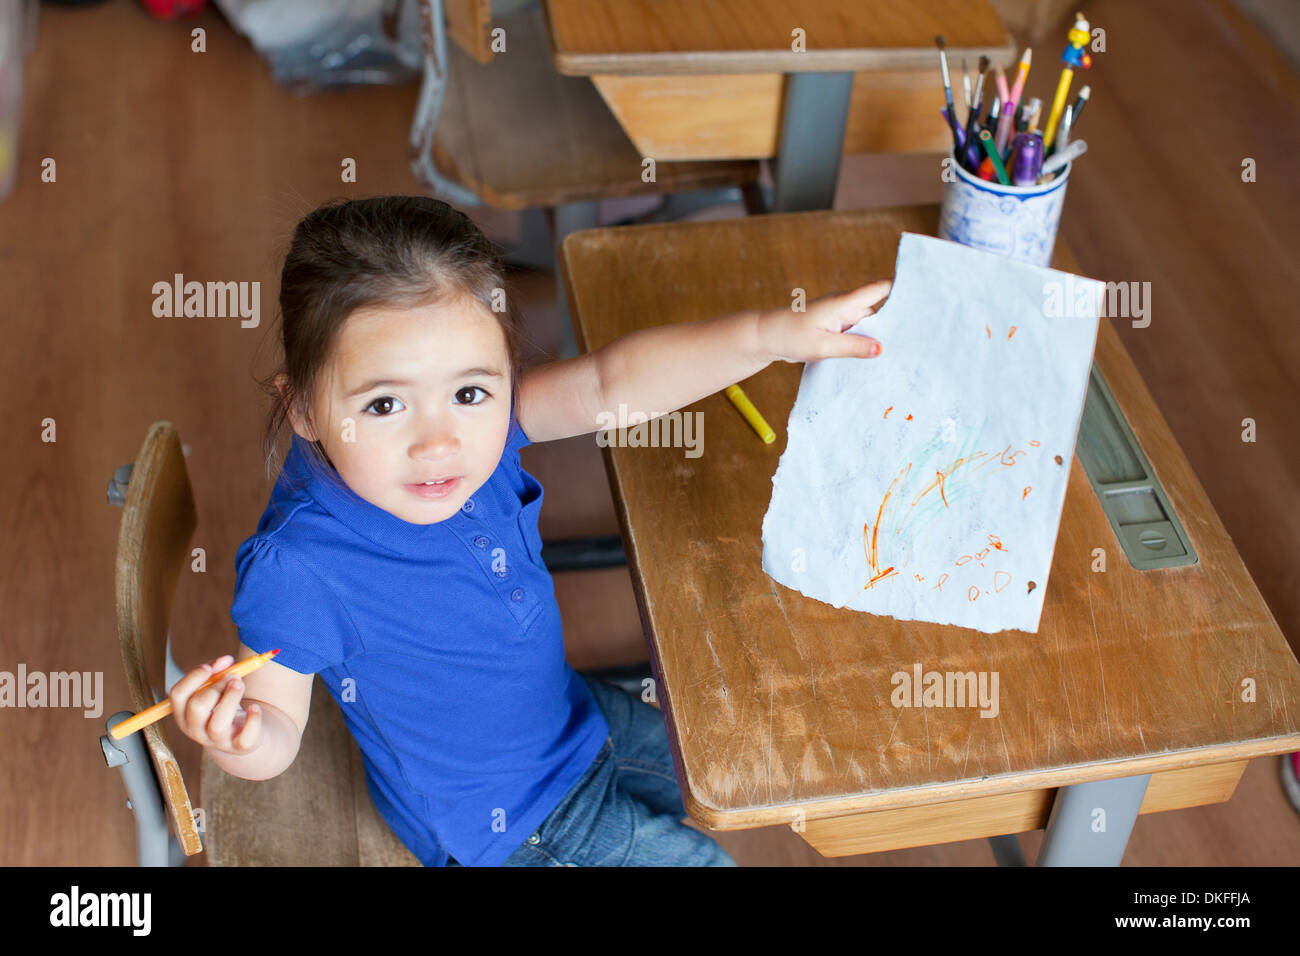 Girl at desk showing picture, high angle - Stock Image